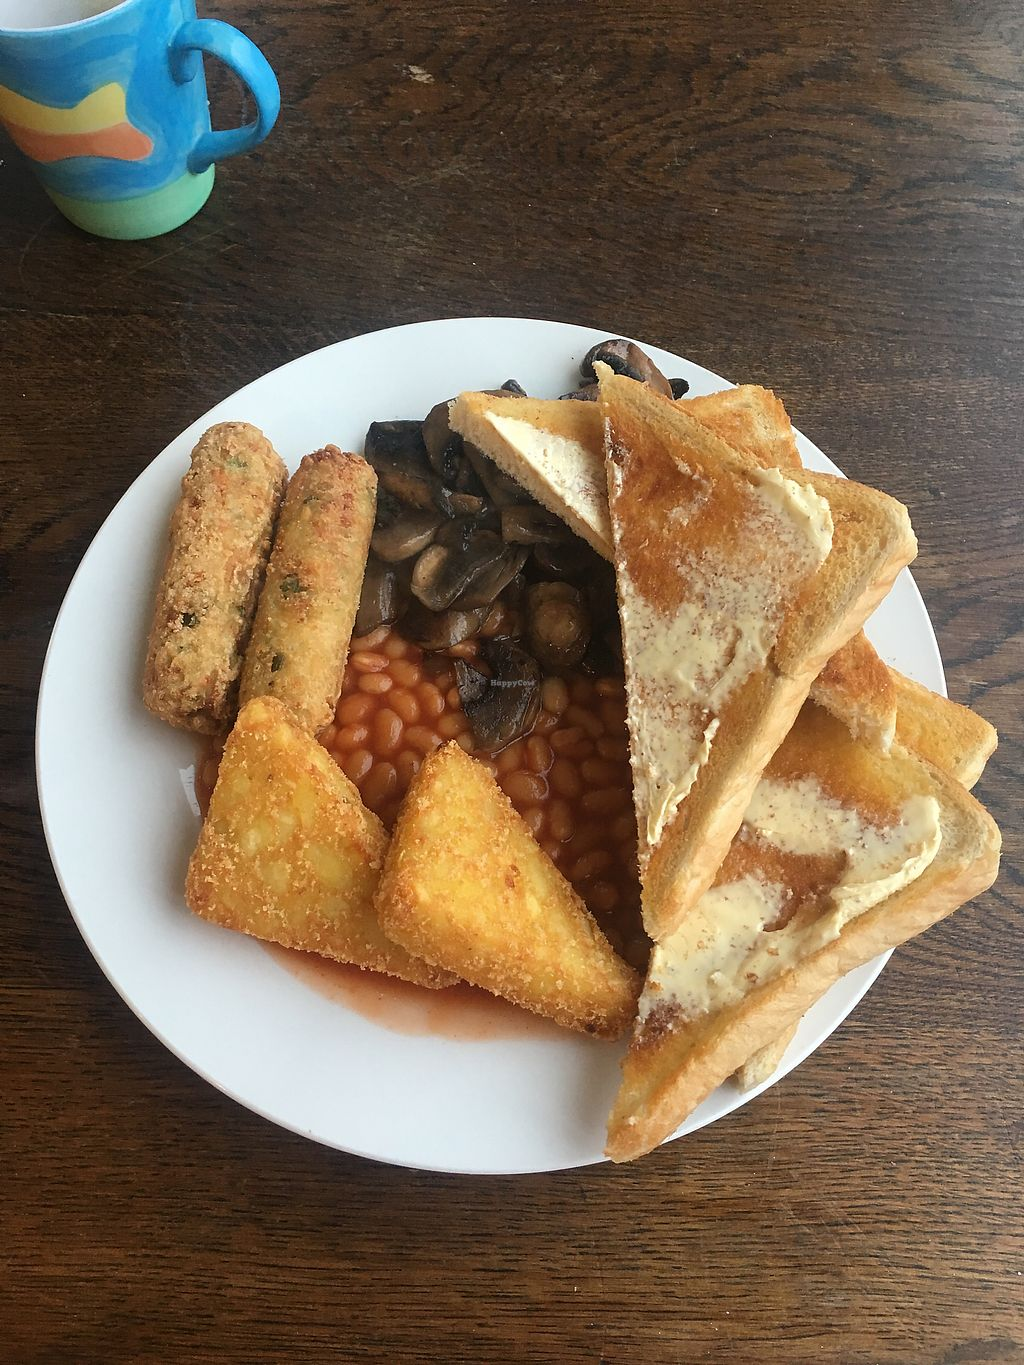 """Photo of The Get Stuffed Pie House  by <a href=""""/members/profile/Superteebs"""">Superteebs</a> <br/>Vegan brekky <br/> February 17, 2018  - <a href='/contact/abuse/image/98667/360399'>Report</a>"""